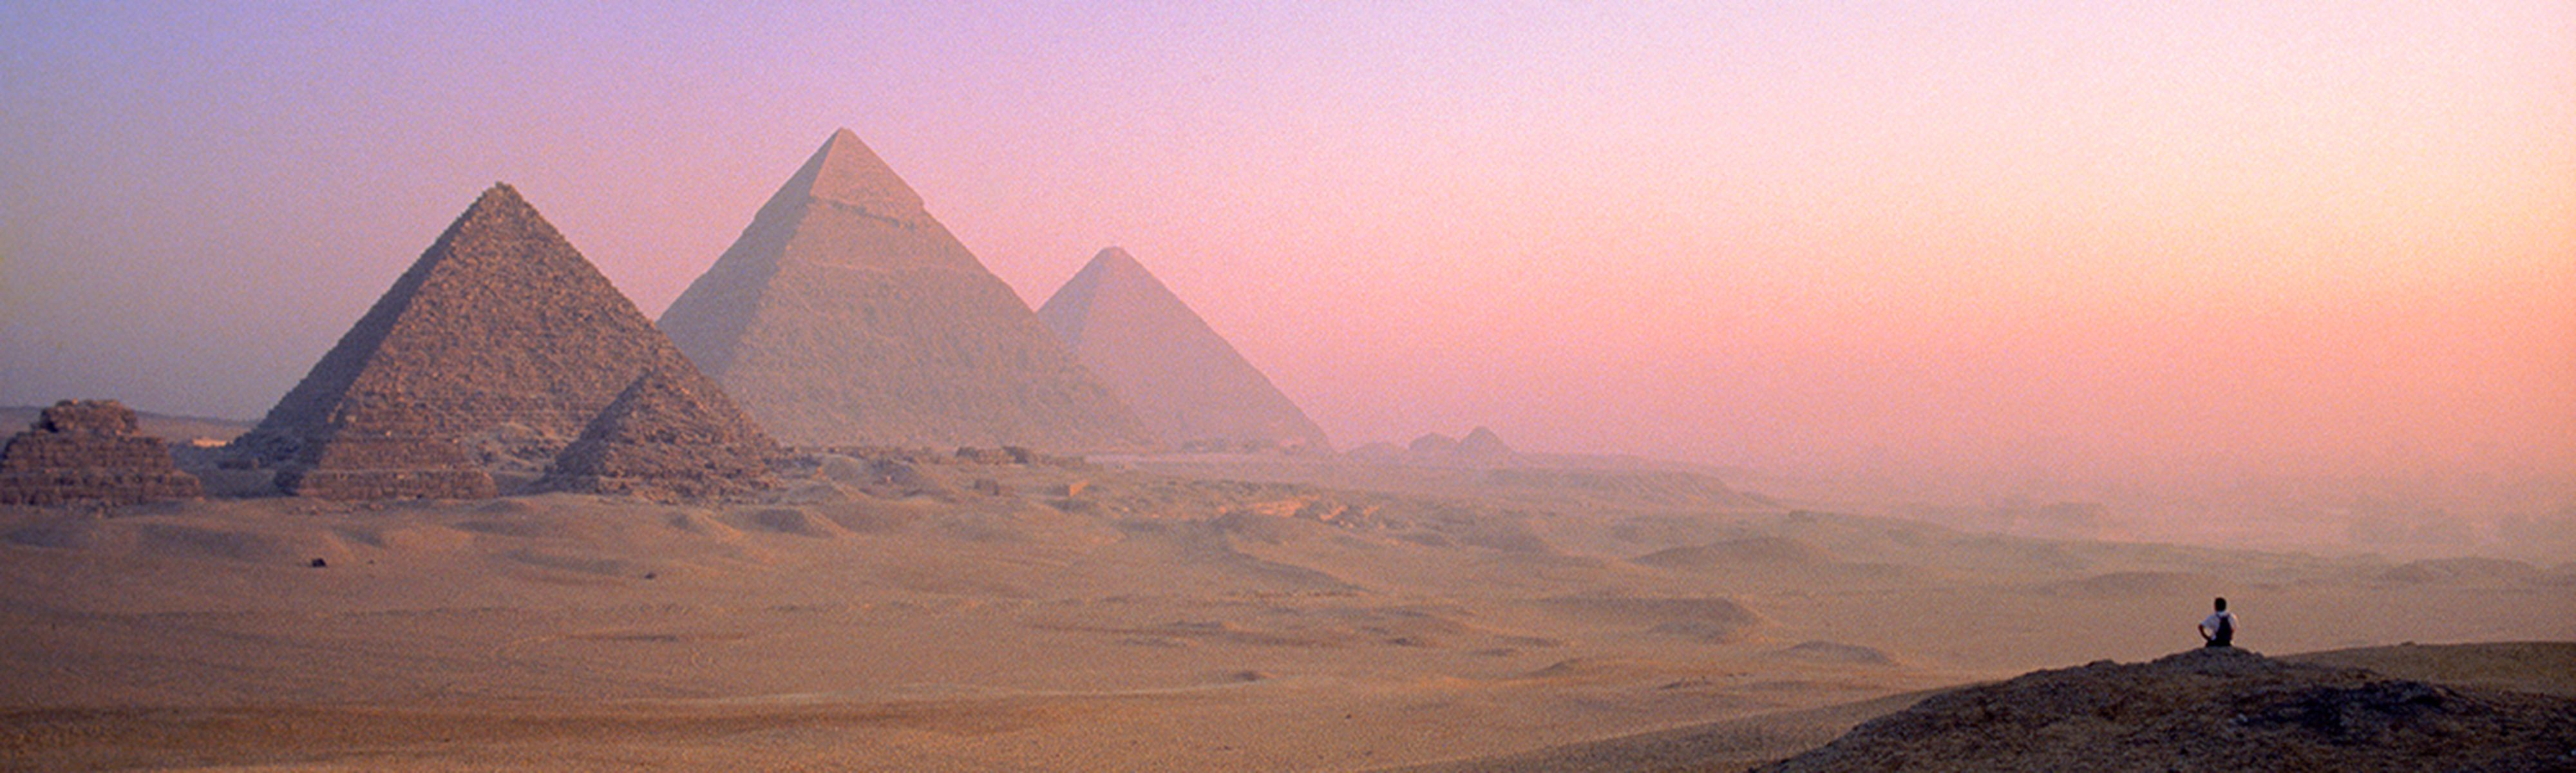 Pyramids at sunset in Cairo Egypt